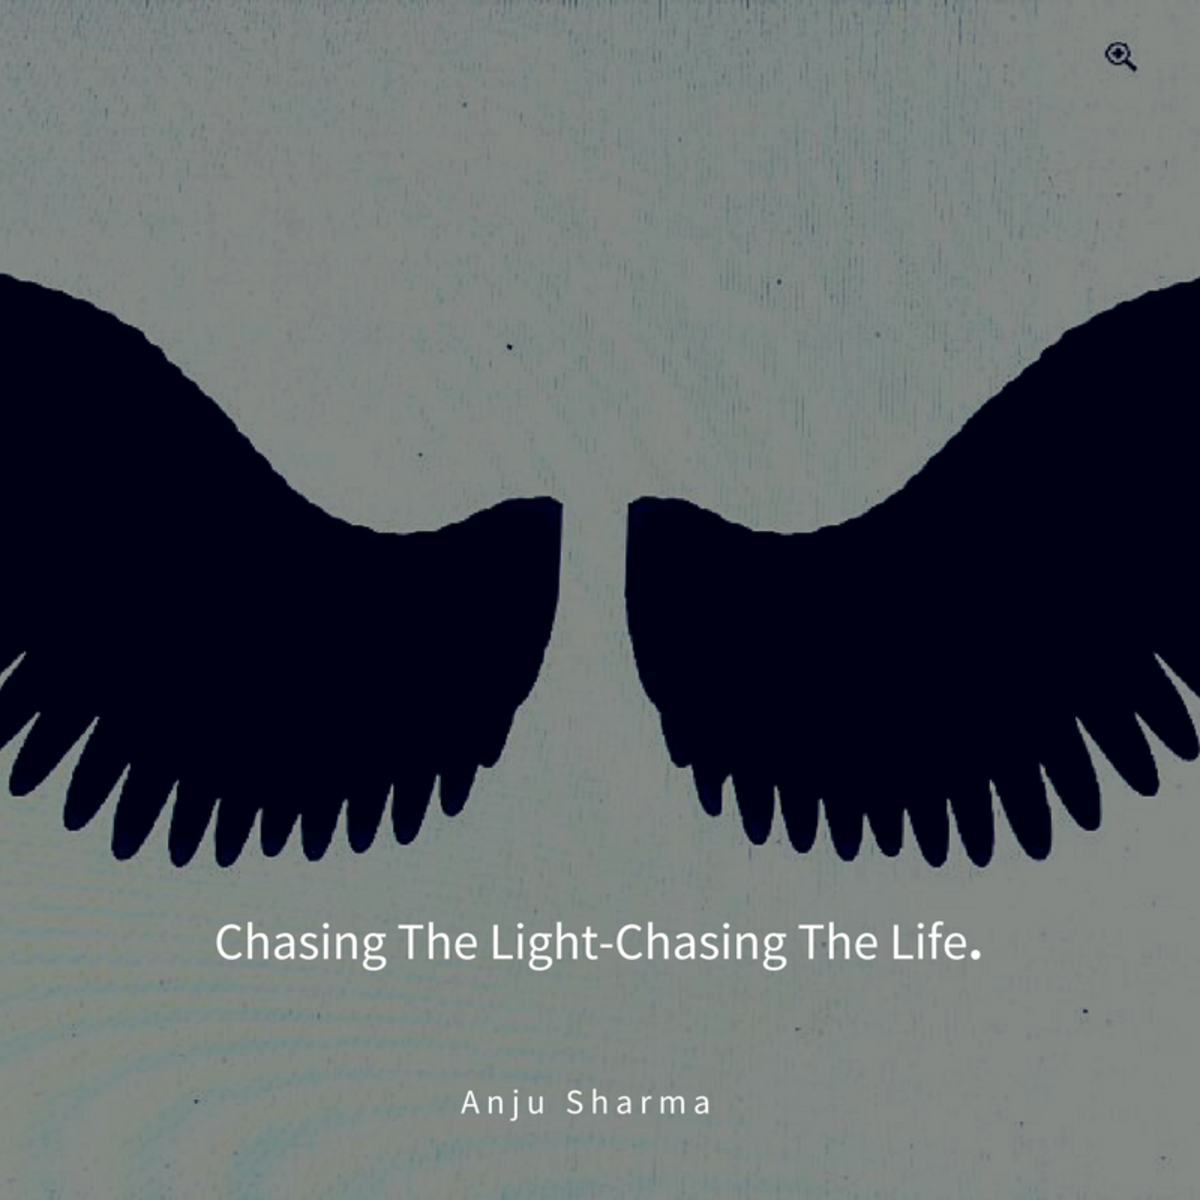 Chasing The Light-Chasing The Life